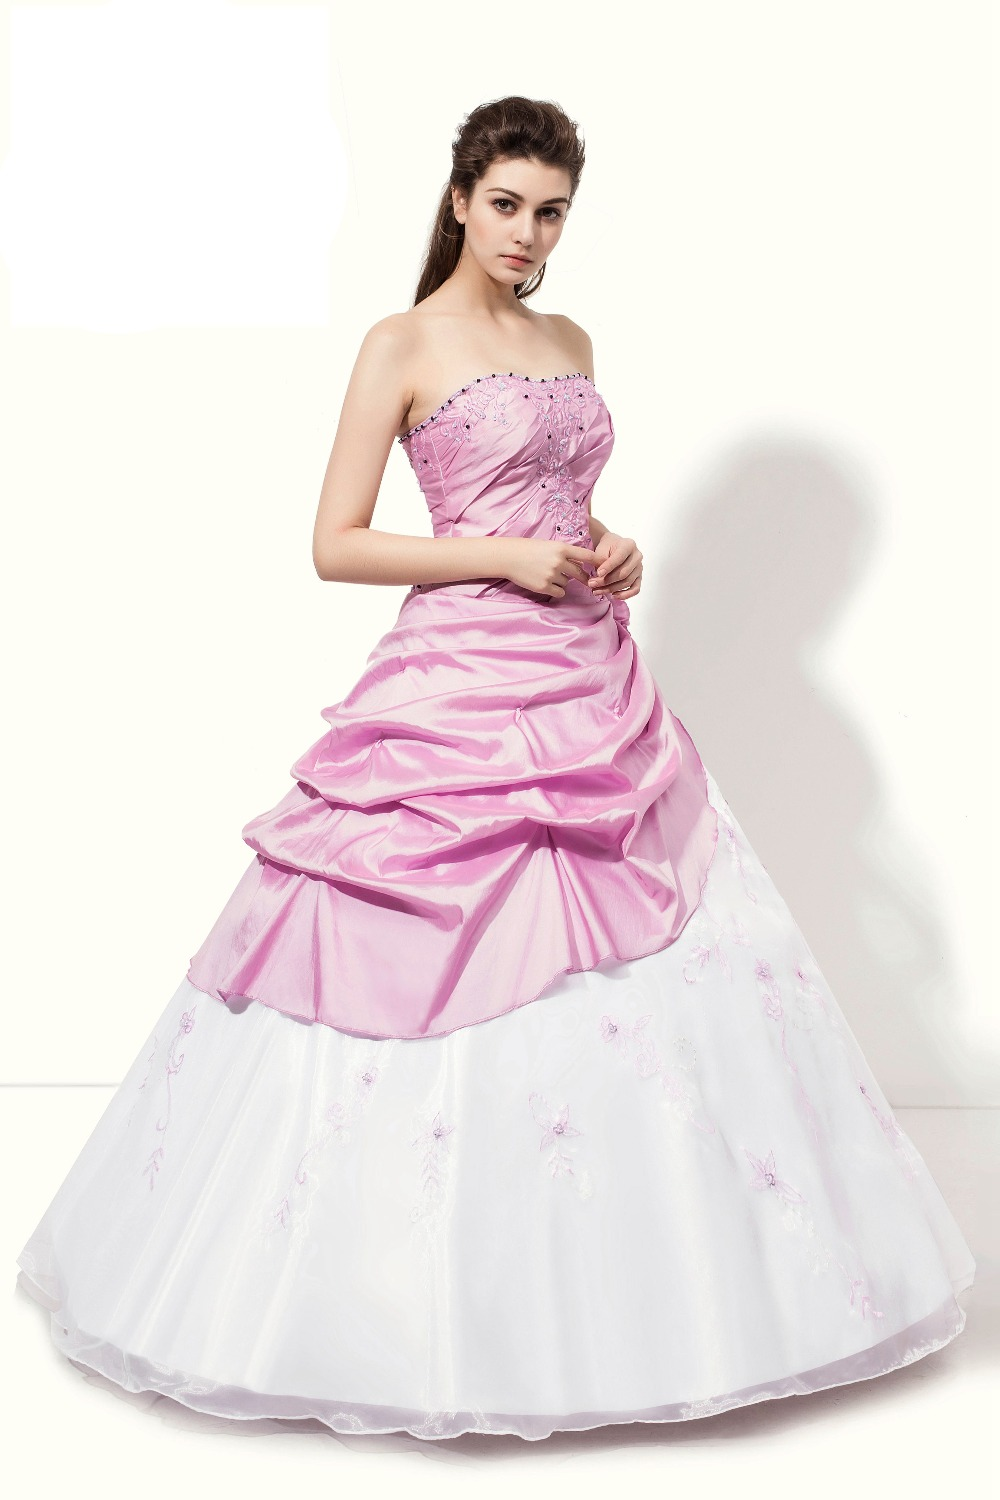 74648eba77c In Stock Pink White Quinceanera Dresses New Taffeta And Tulle Quinceanera  Dress Handmade Flowers And Embroidery Blushing Selling-in Quinceanera  Dresses from ...